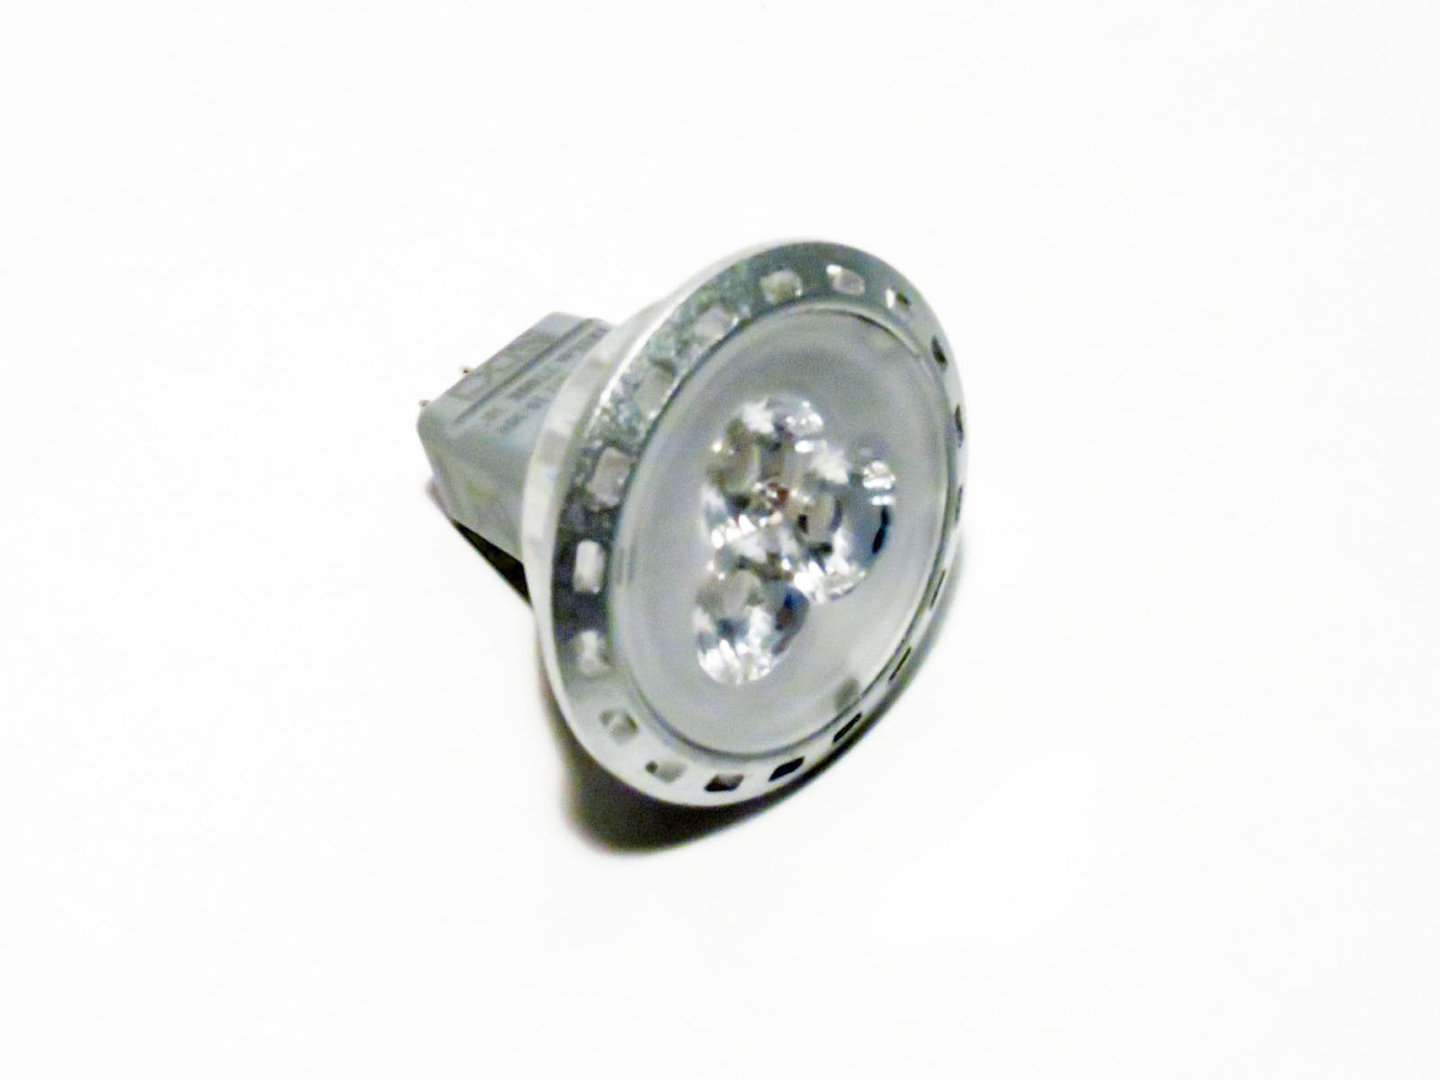 MR11 GU4 HighPower LED 2,5W 30° 10-30V warmweiß